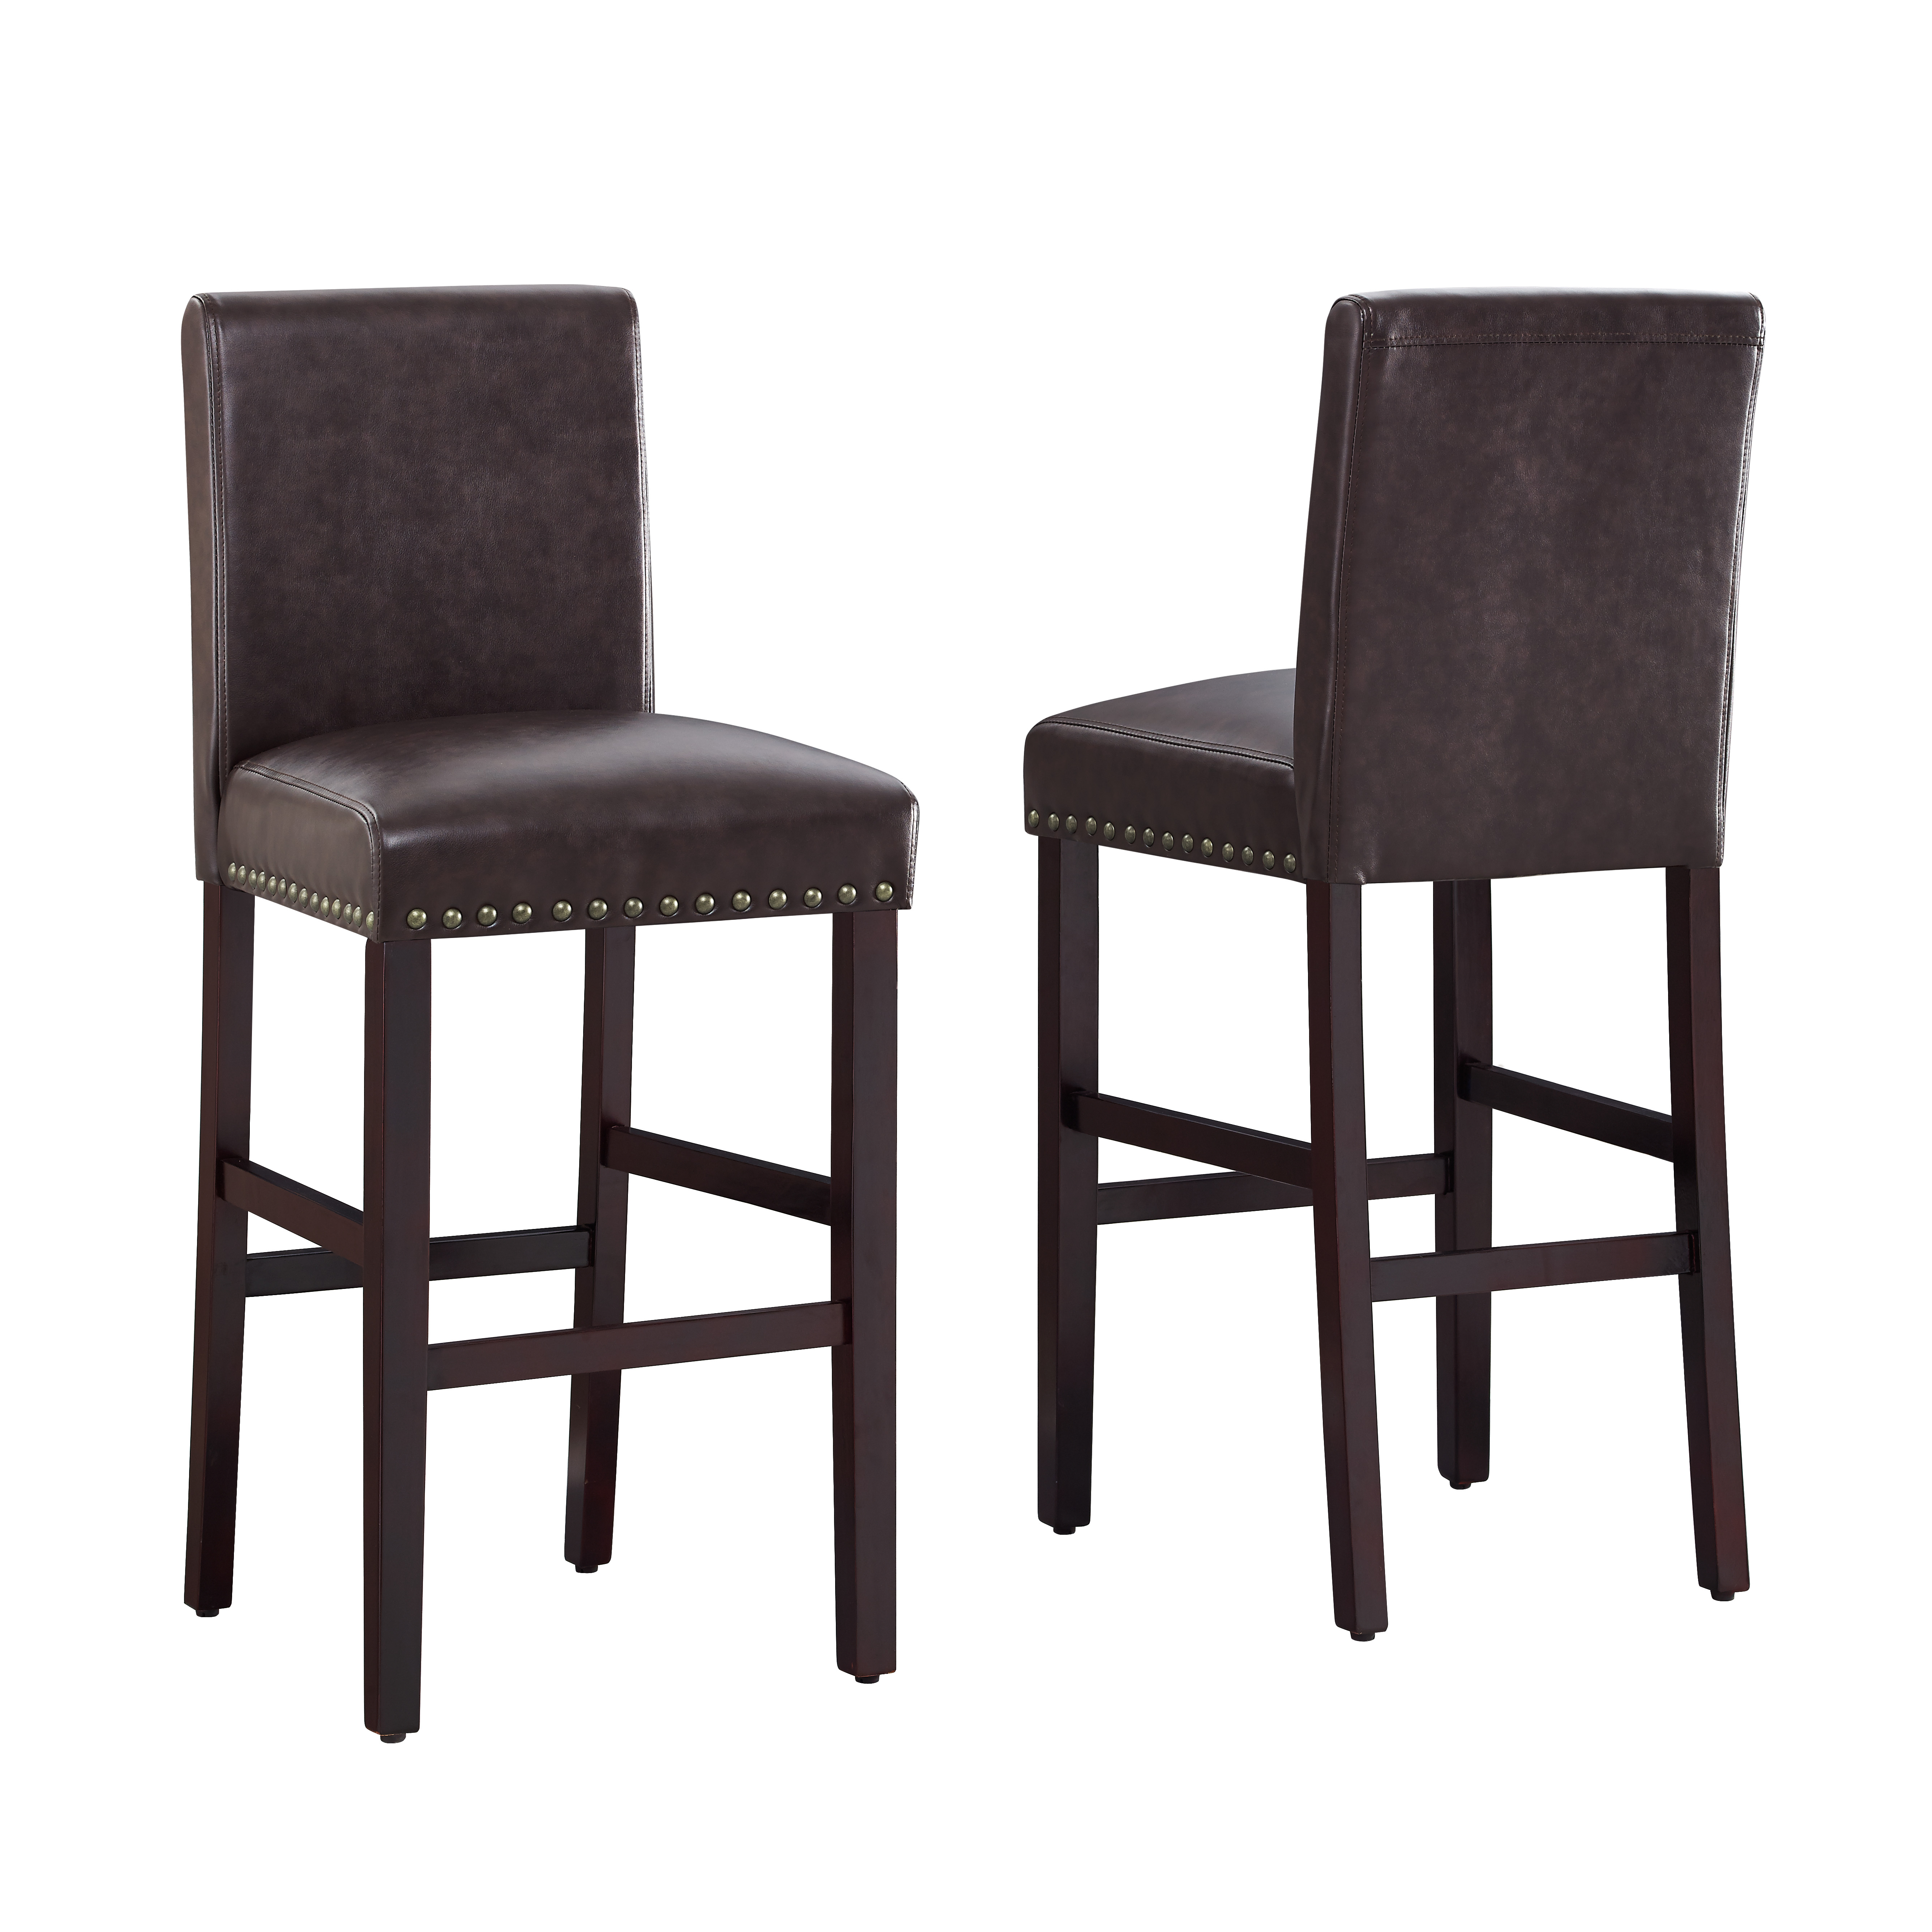 Dhi Nice Nail Head Faux Leather Bar Stool (2 Pk), Multiple Colors by Dhi